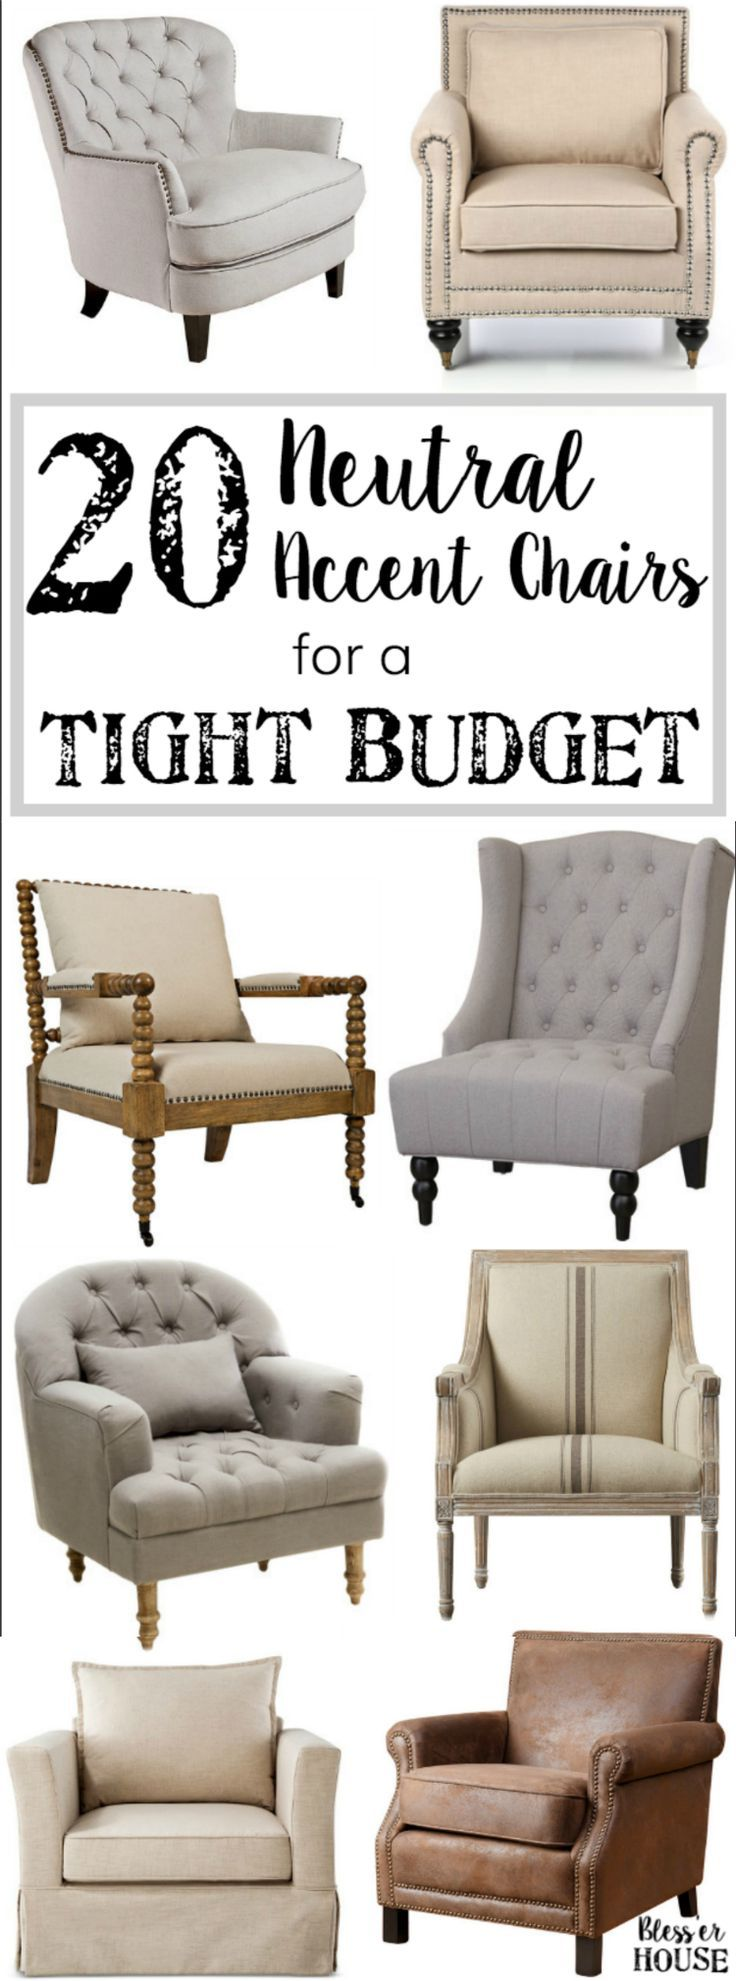 Best 25+ Accent chairs ideas on Pinterest | Oversized living room ...